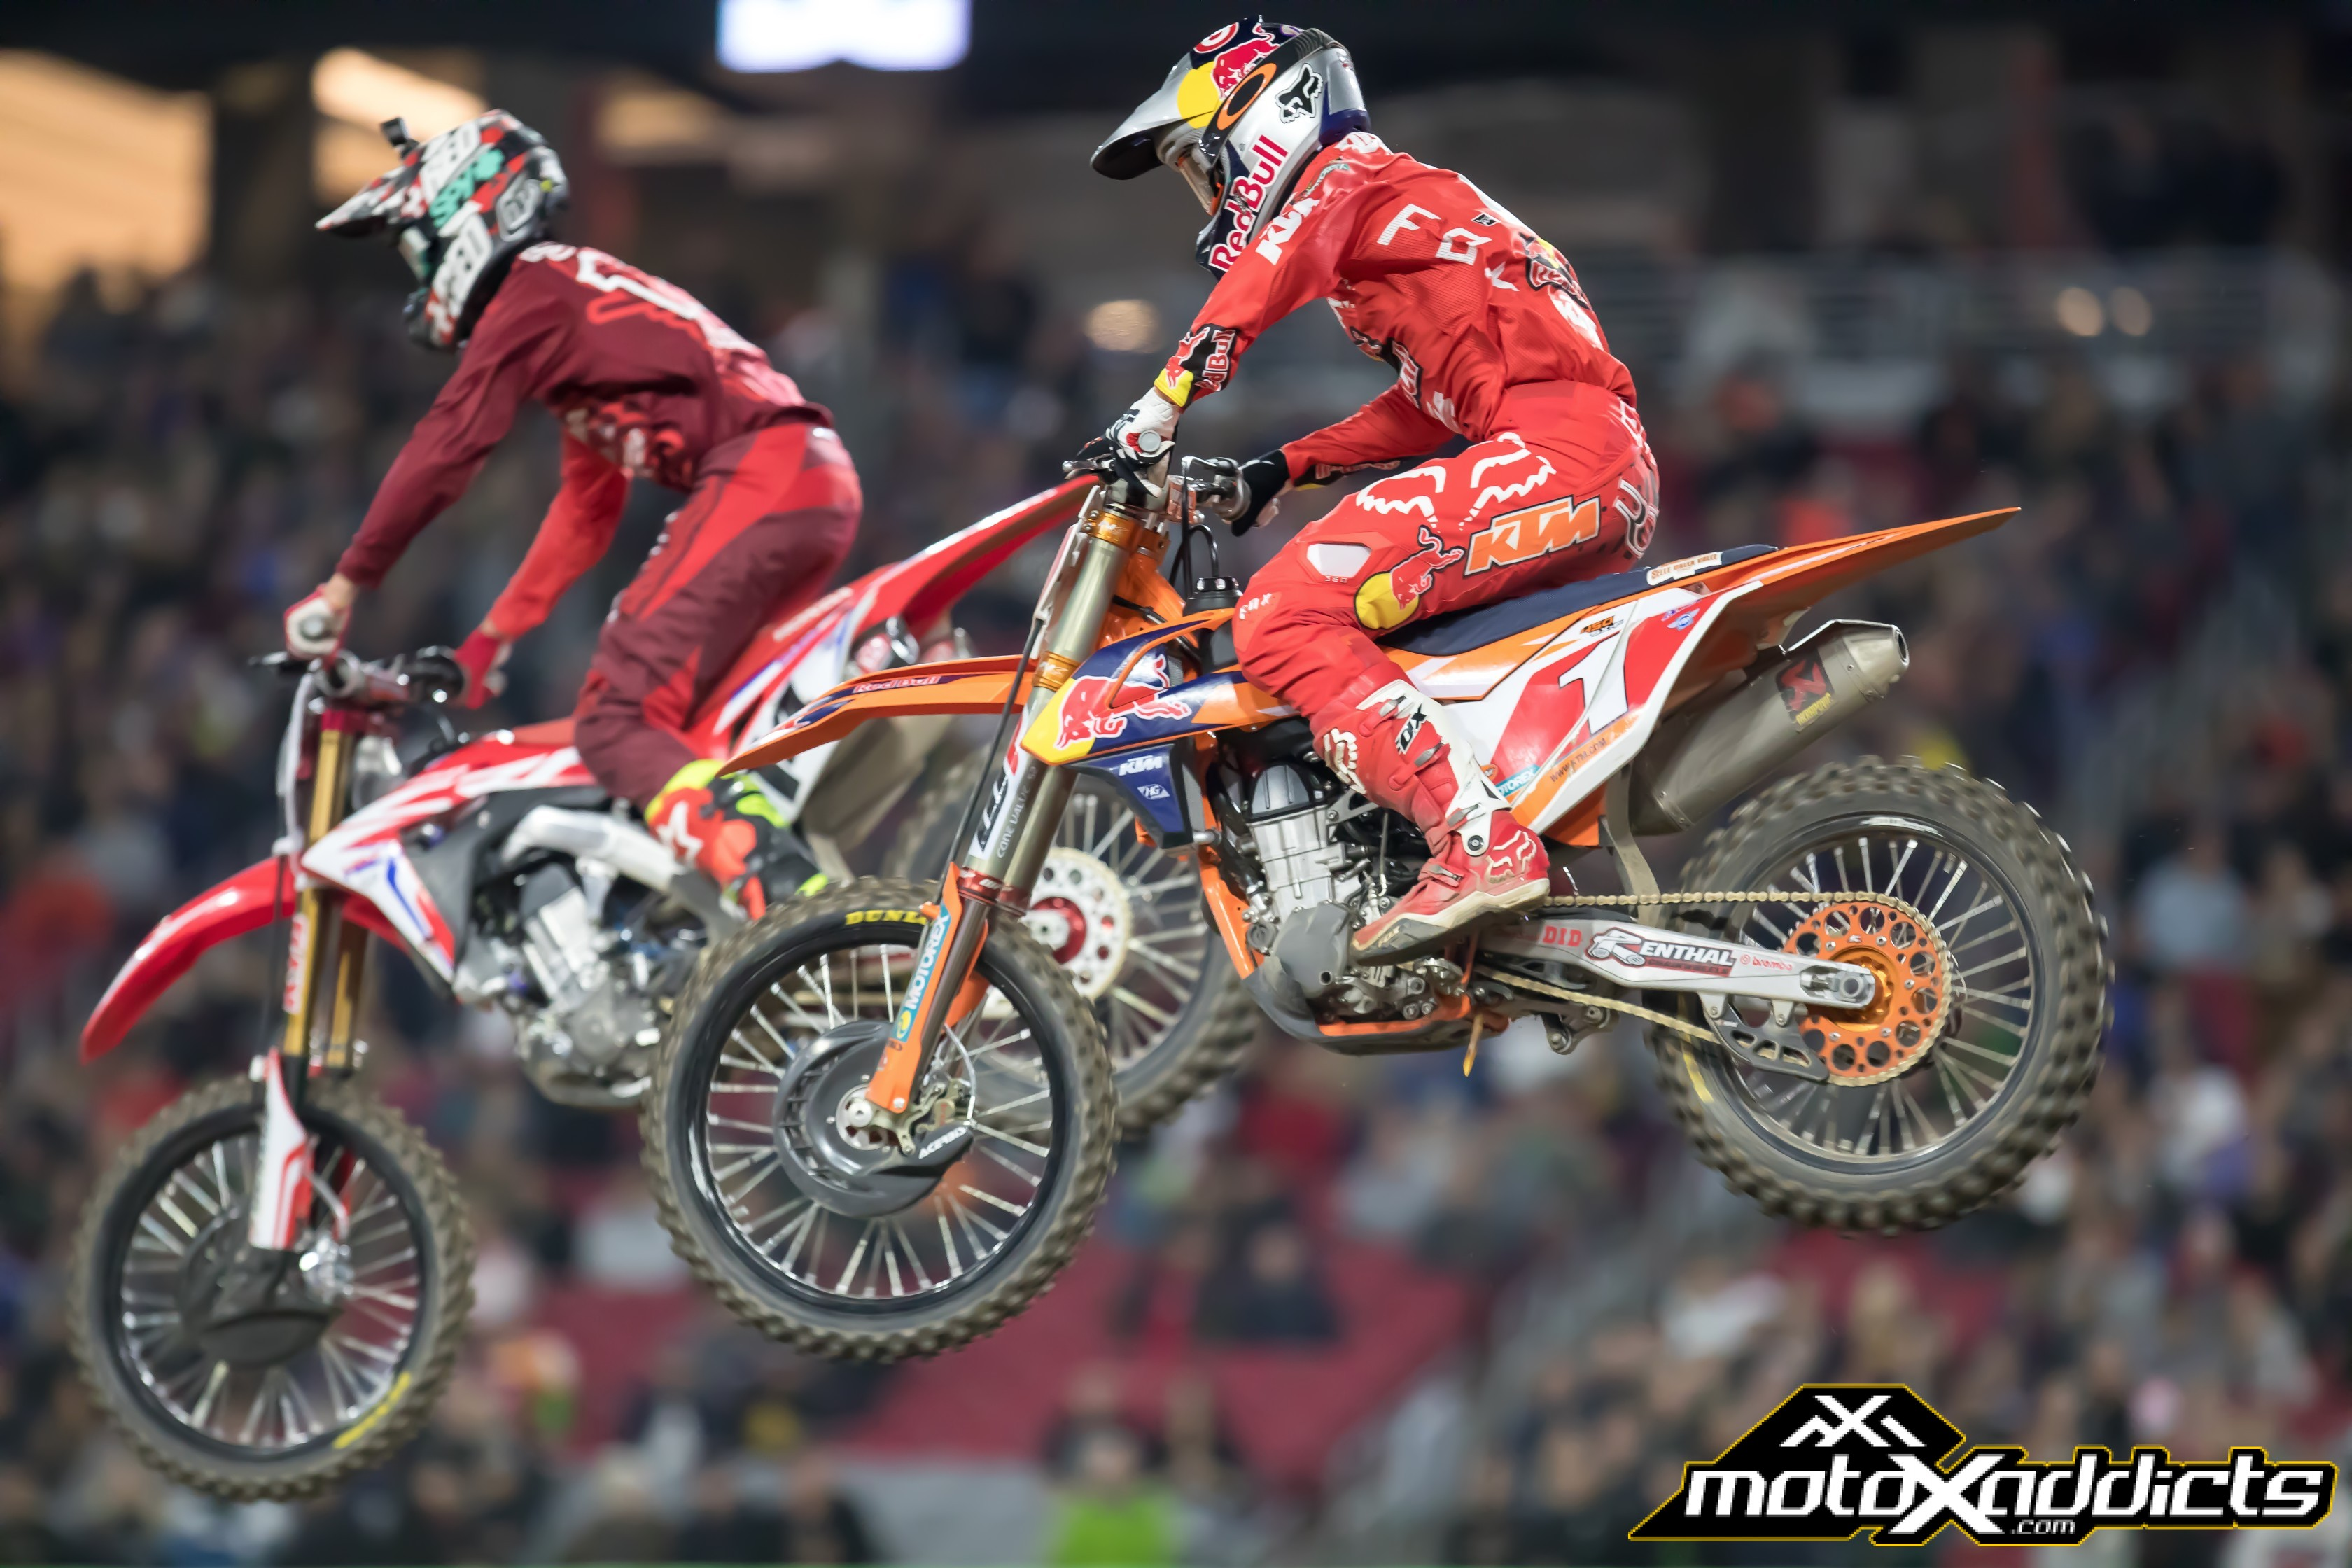 Seely #14 and Dungey #1 were locked in battles all night long in both the heat race and main event.